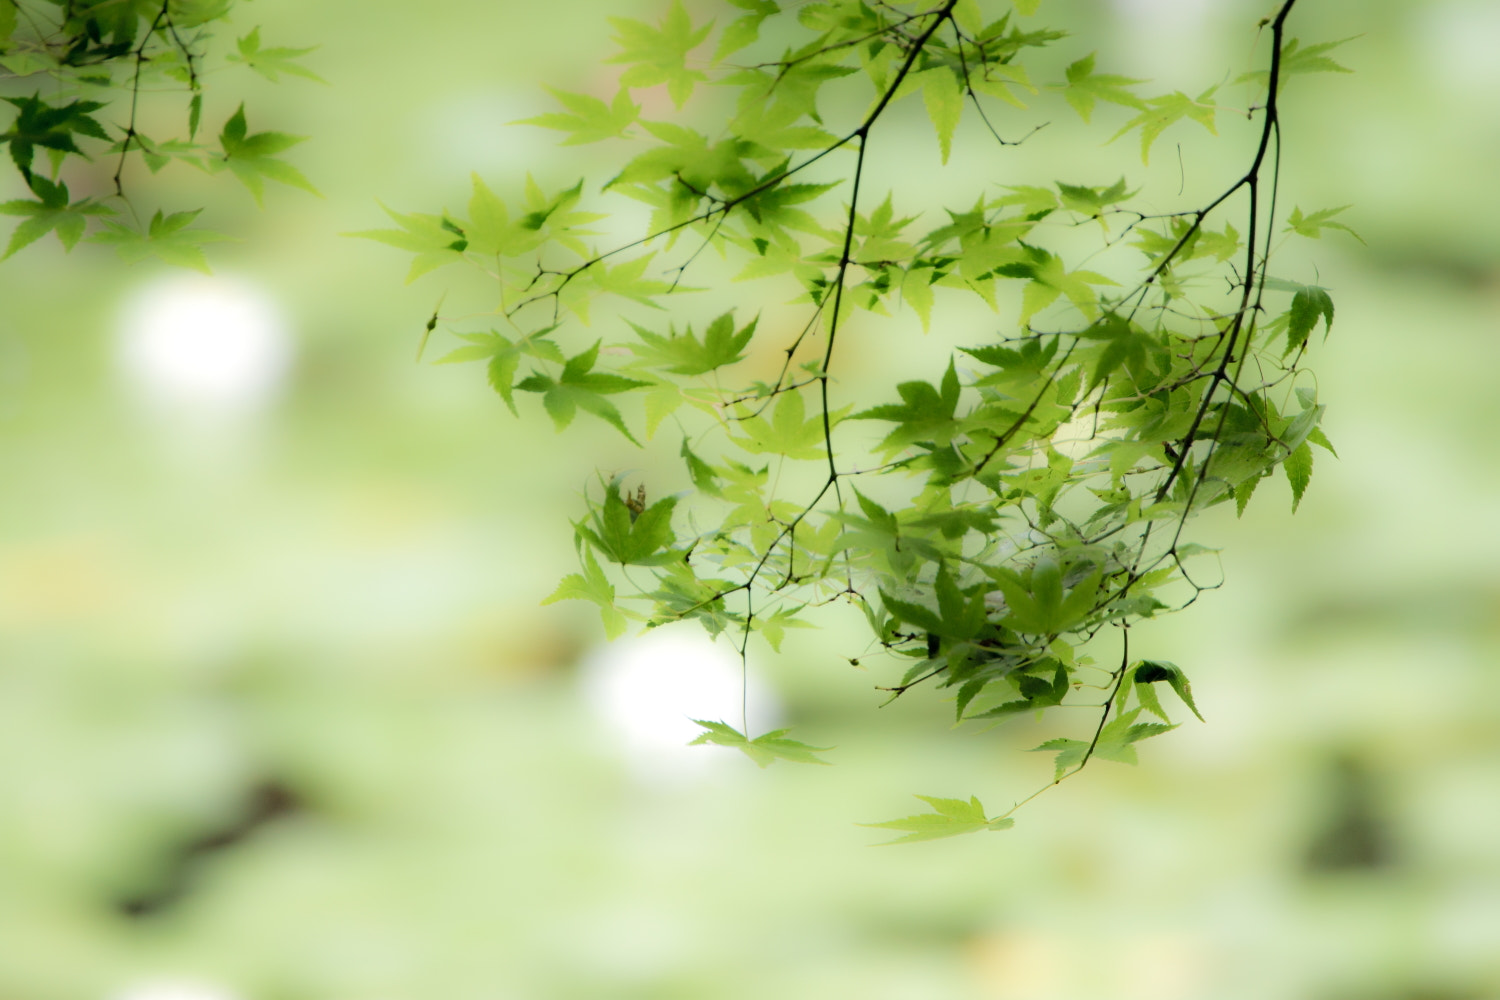 Photograph On the wind ..green.. by Takeshi Marumoto on 500px